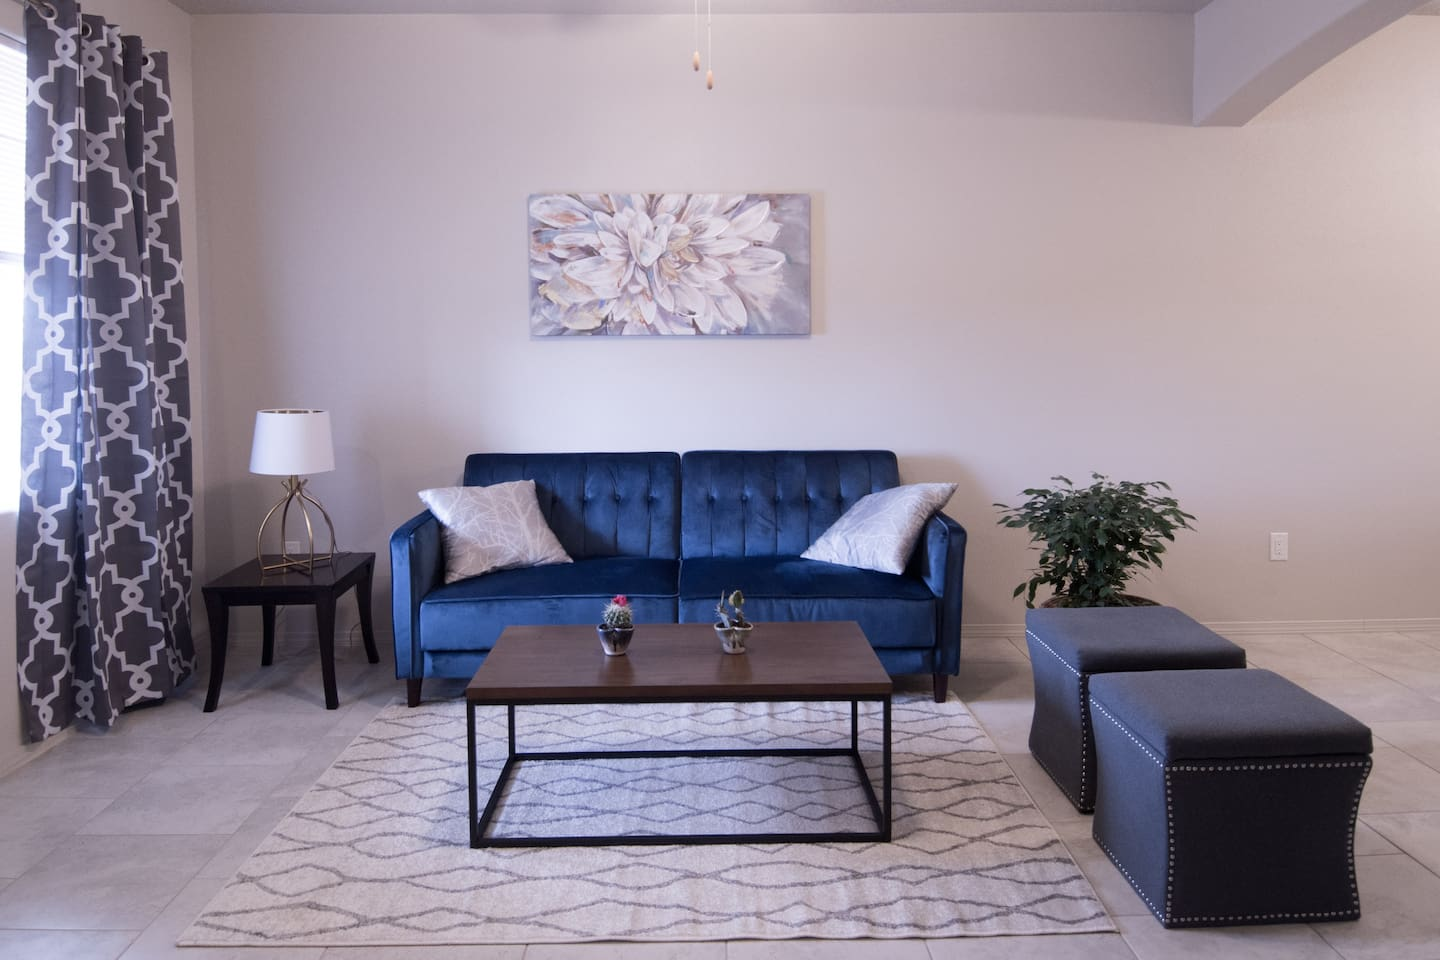 Be one of the first to stay in this brand new home! Everything at Casa del Sol is sparkling new, including this sofa that converts to a bed.